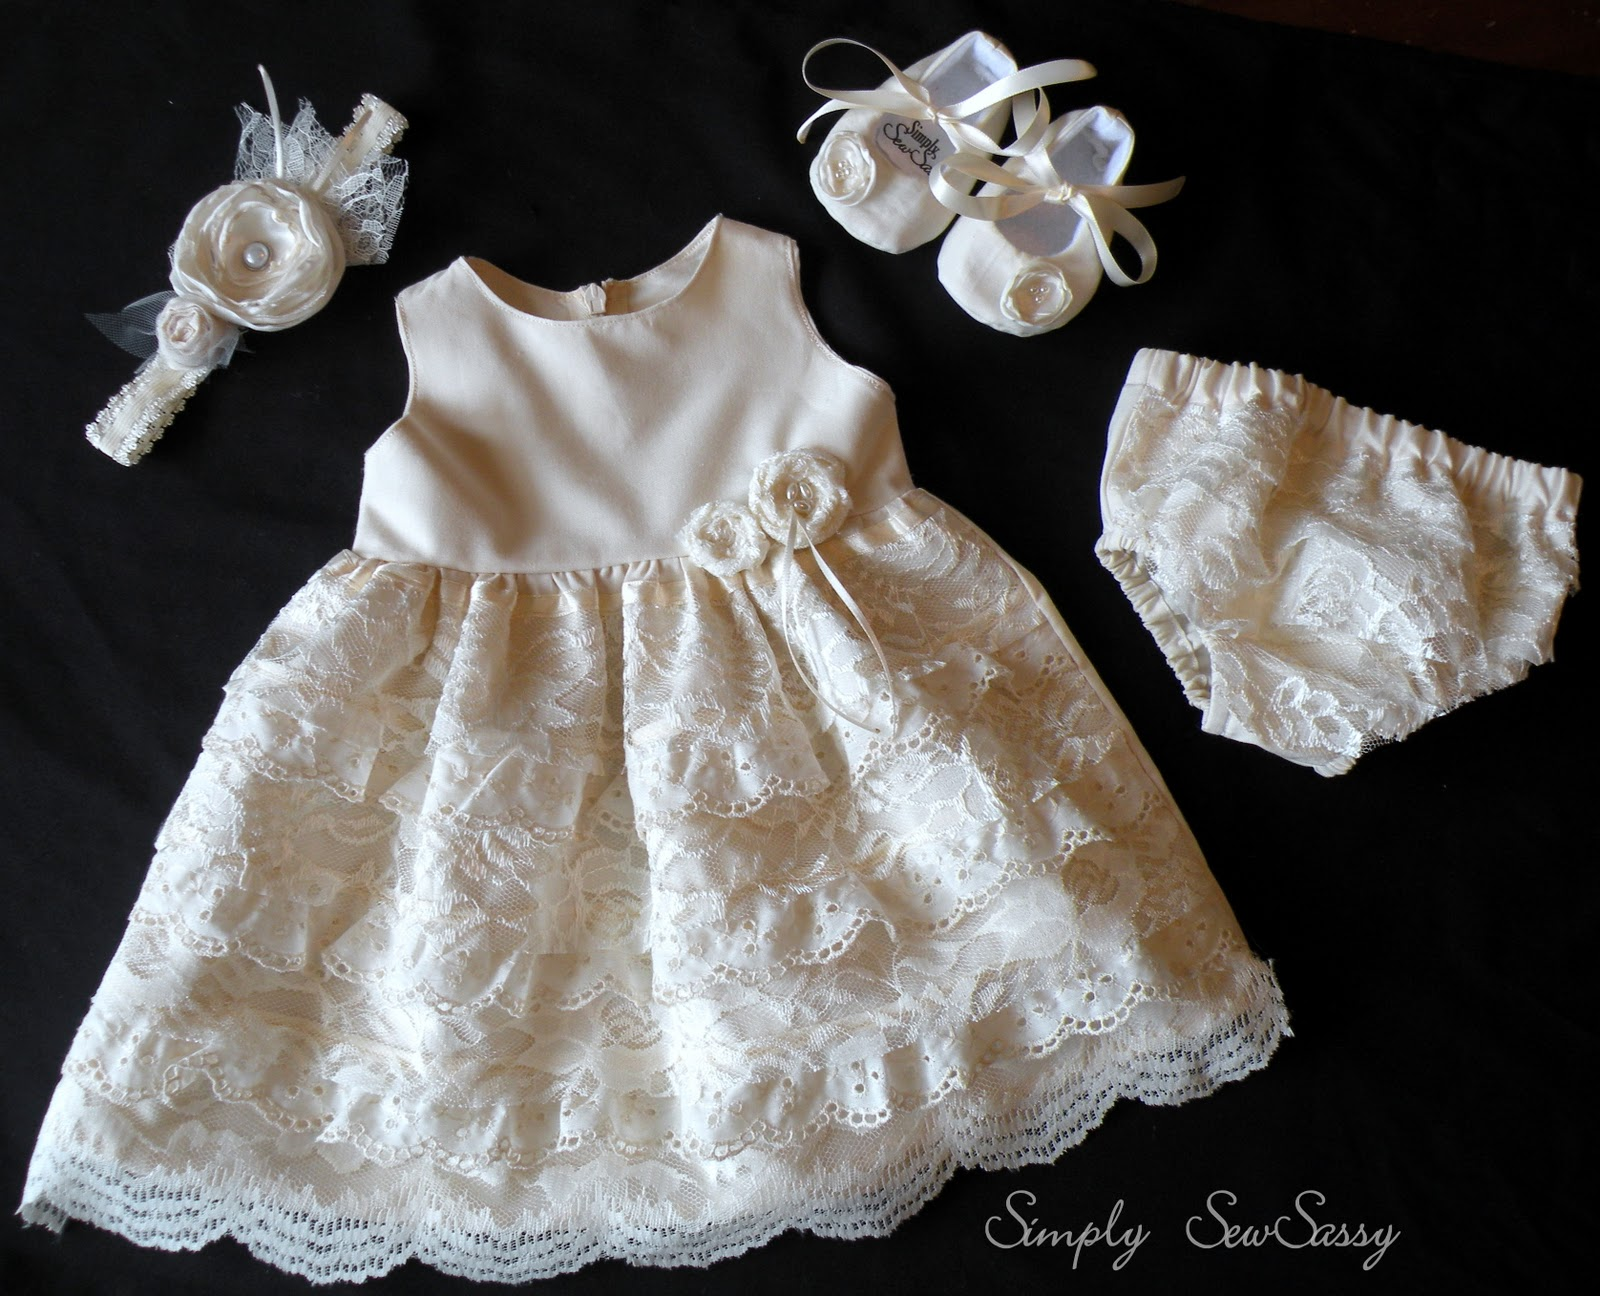 Simply Sewsassy Vintage Pearl Blessing Outfit